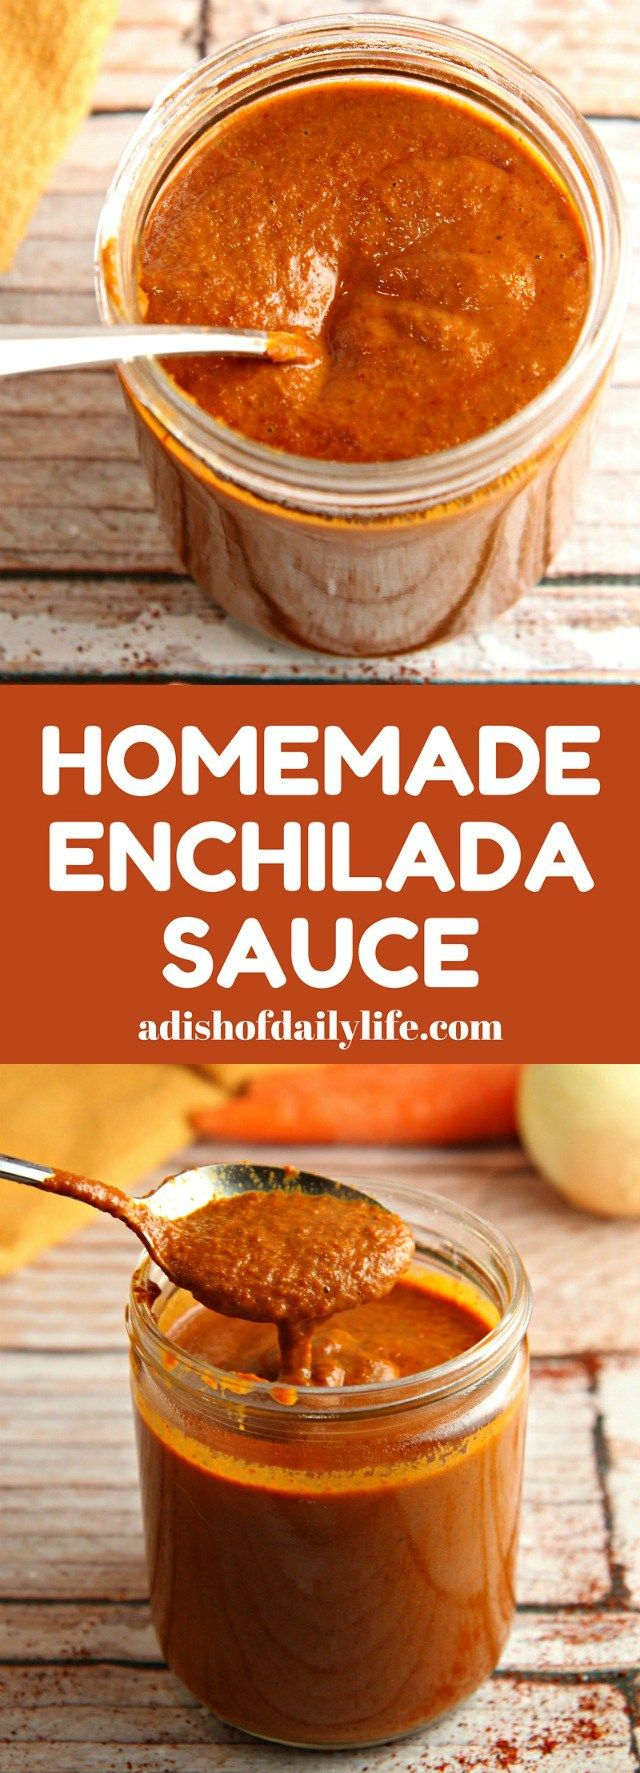 Ditch the canned sauce! This Homemade Enchilada Sauce recipe is very easy to make and tastes a lot better than canned! Make turkey enchiladas with your Thanksgiving leftovers!